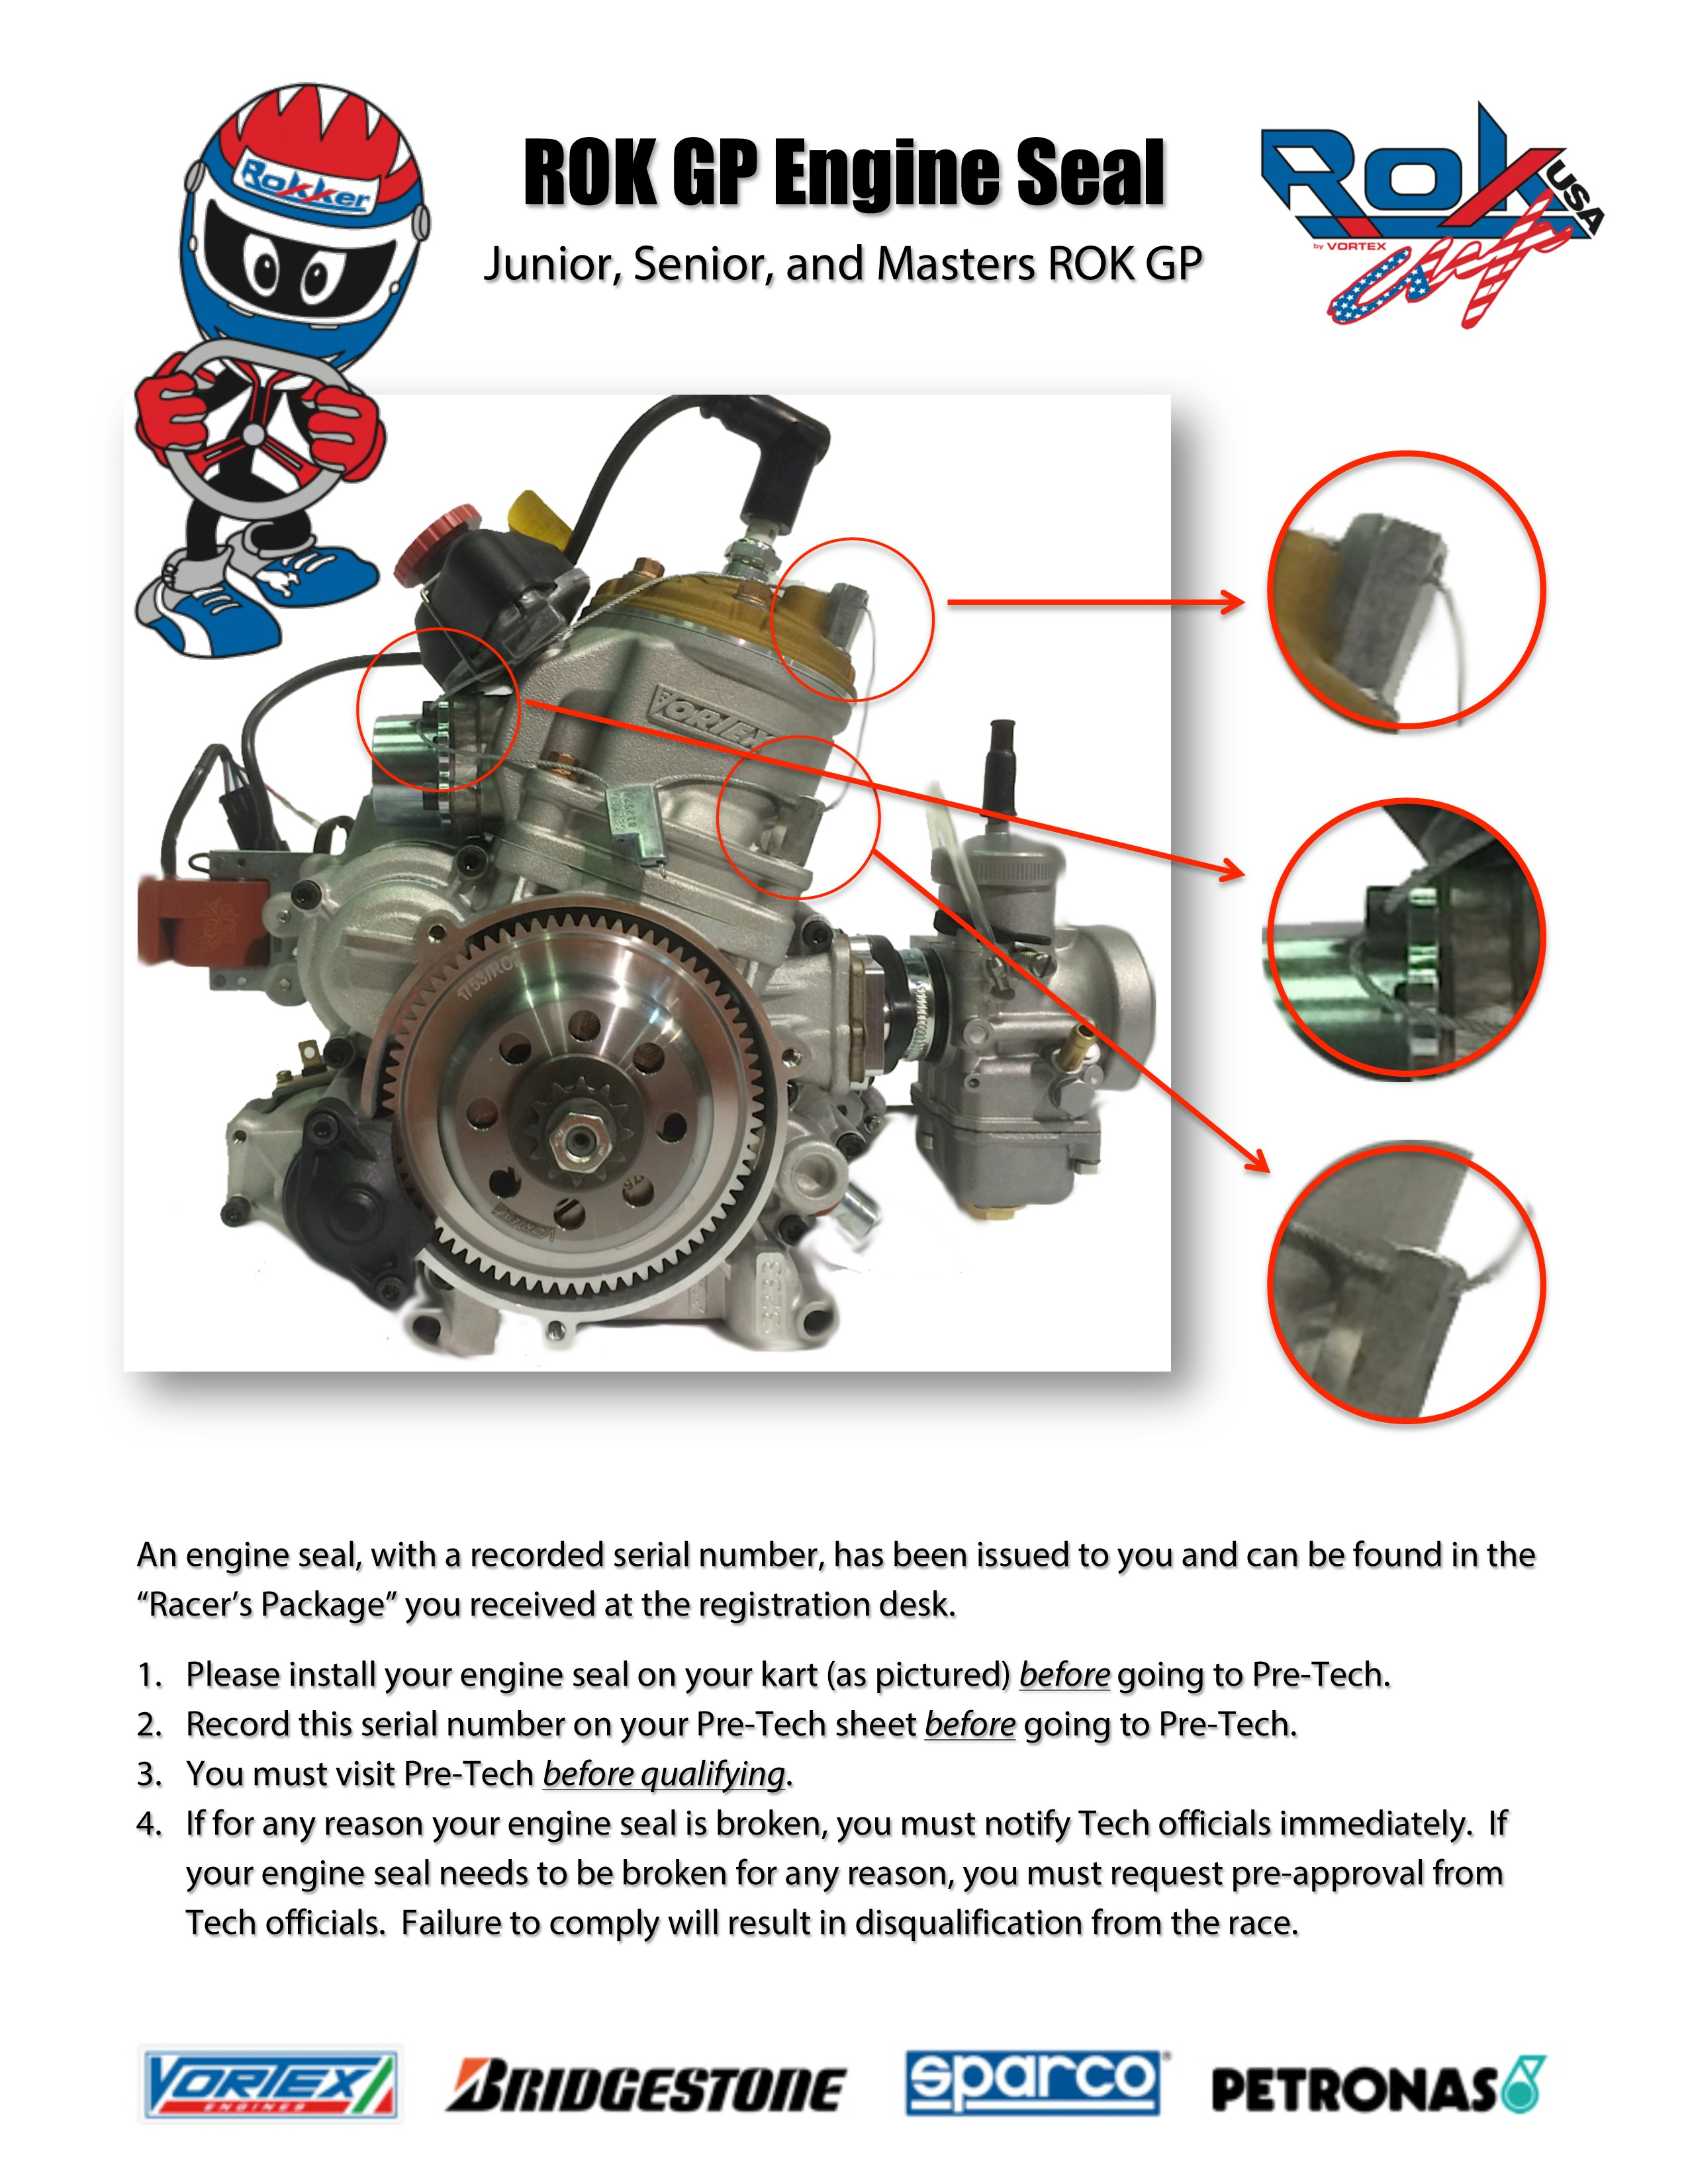 Rotax Engine Diagram Rules & Regulations Maxspeed Entertainment Of Rotax Engine Diagram